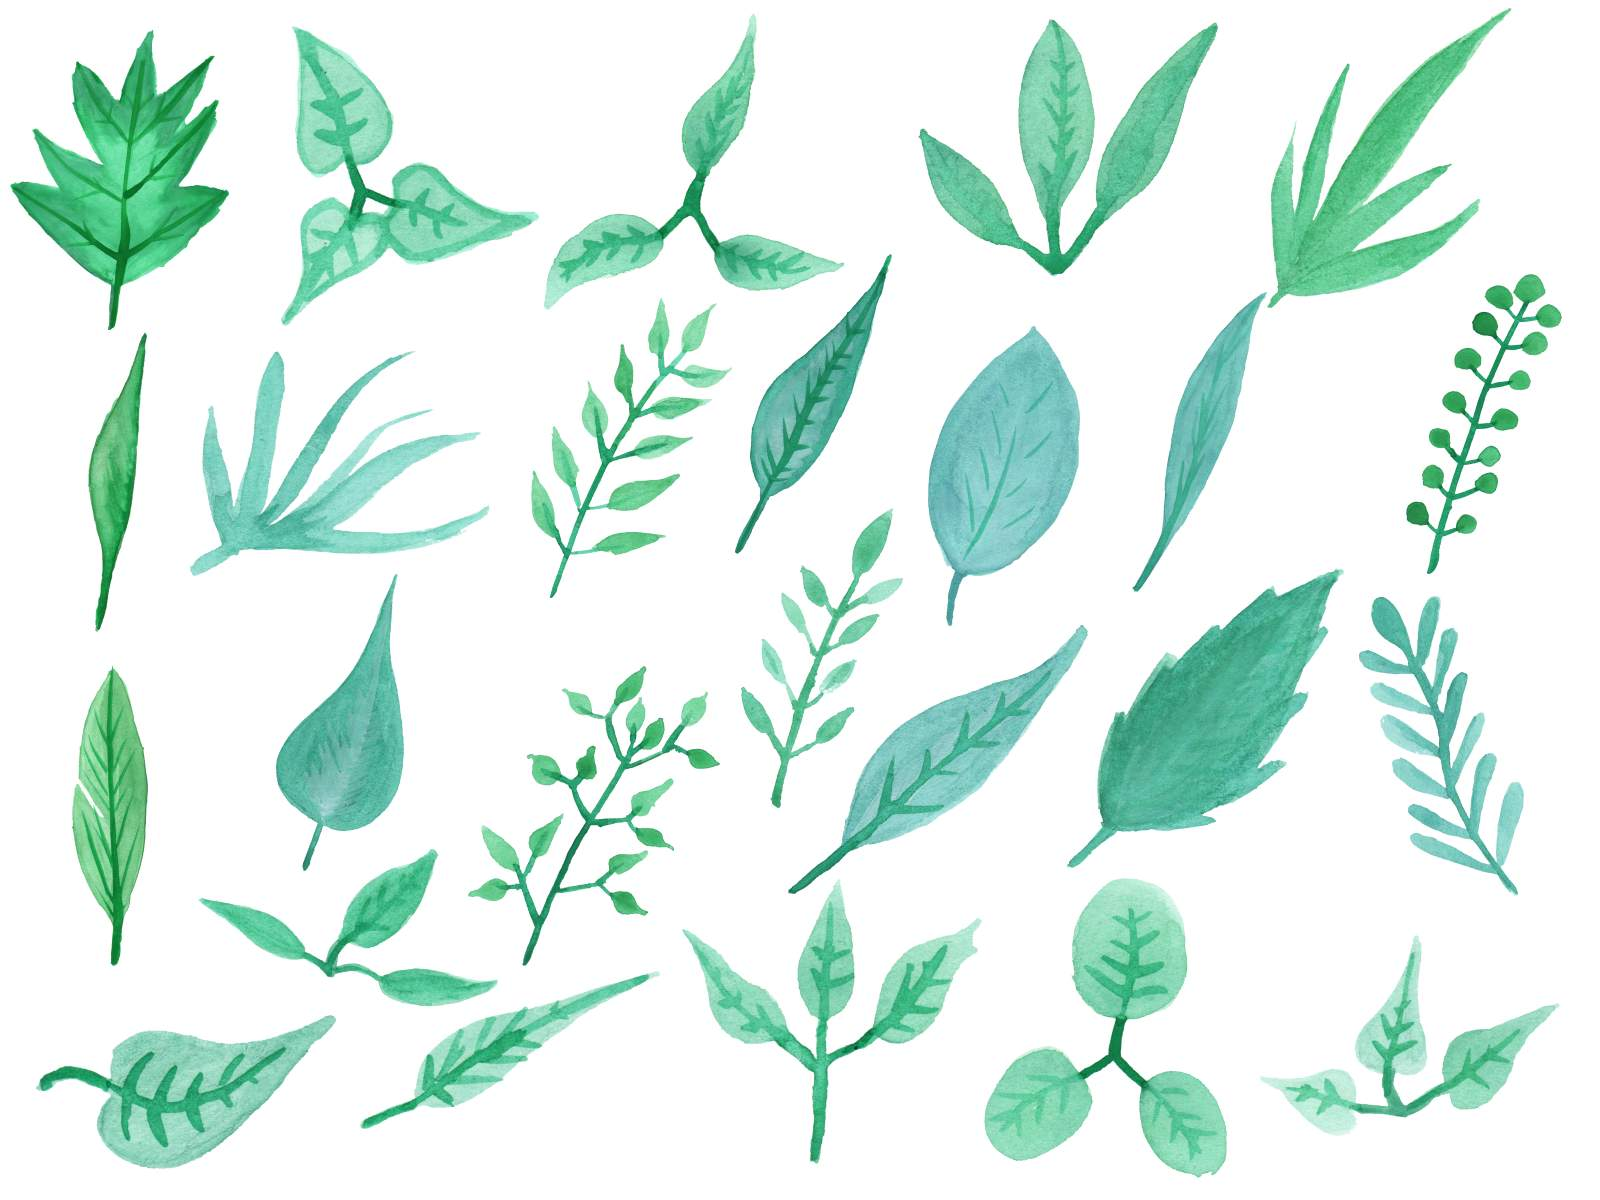 25 Watercolor Leaf (PNG Transparent) Vol. 3.